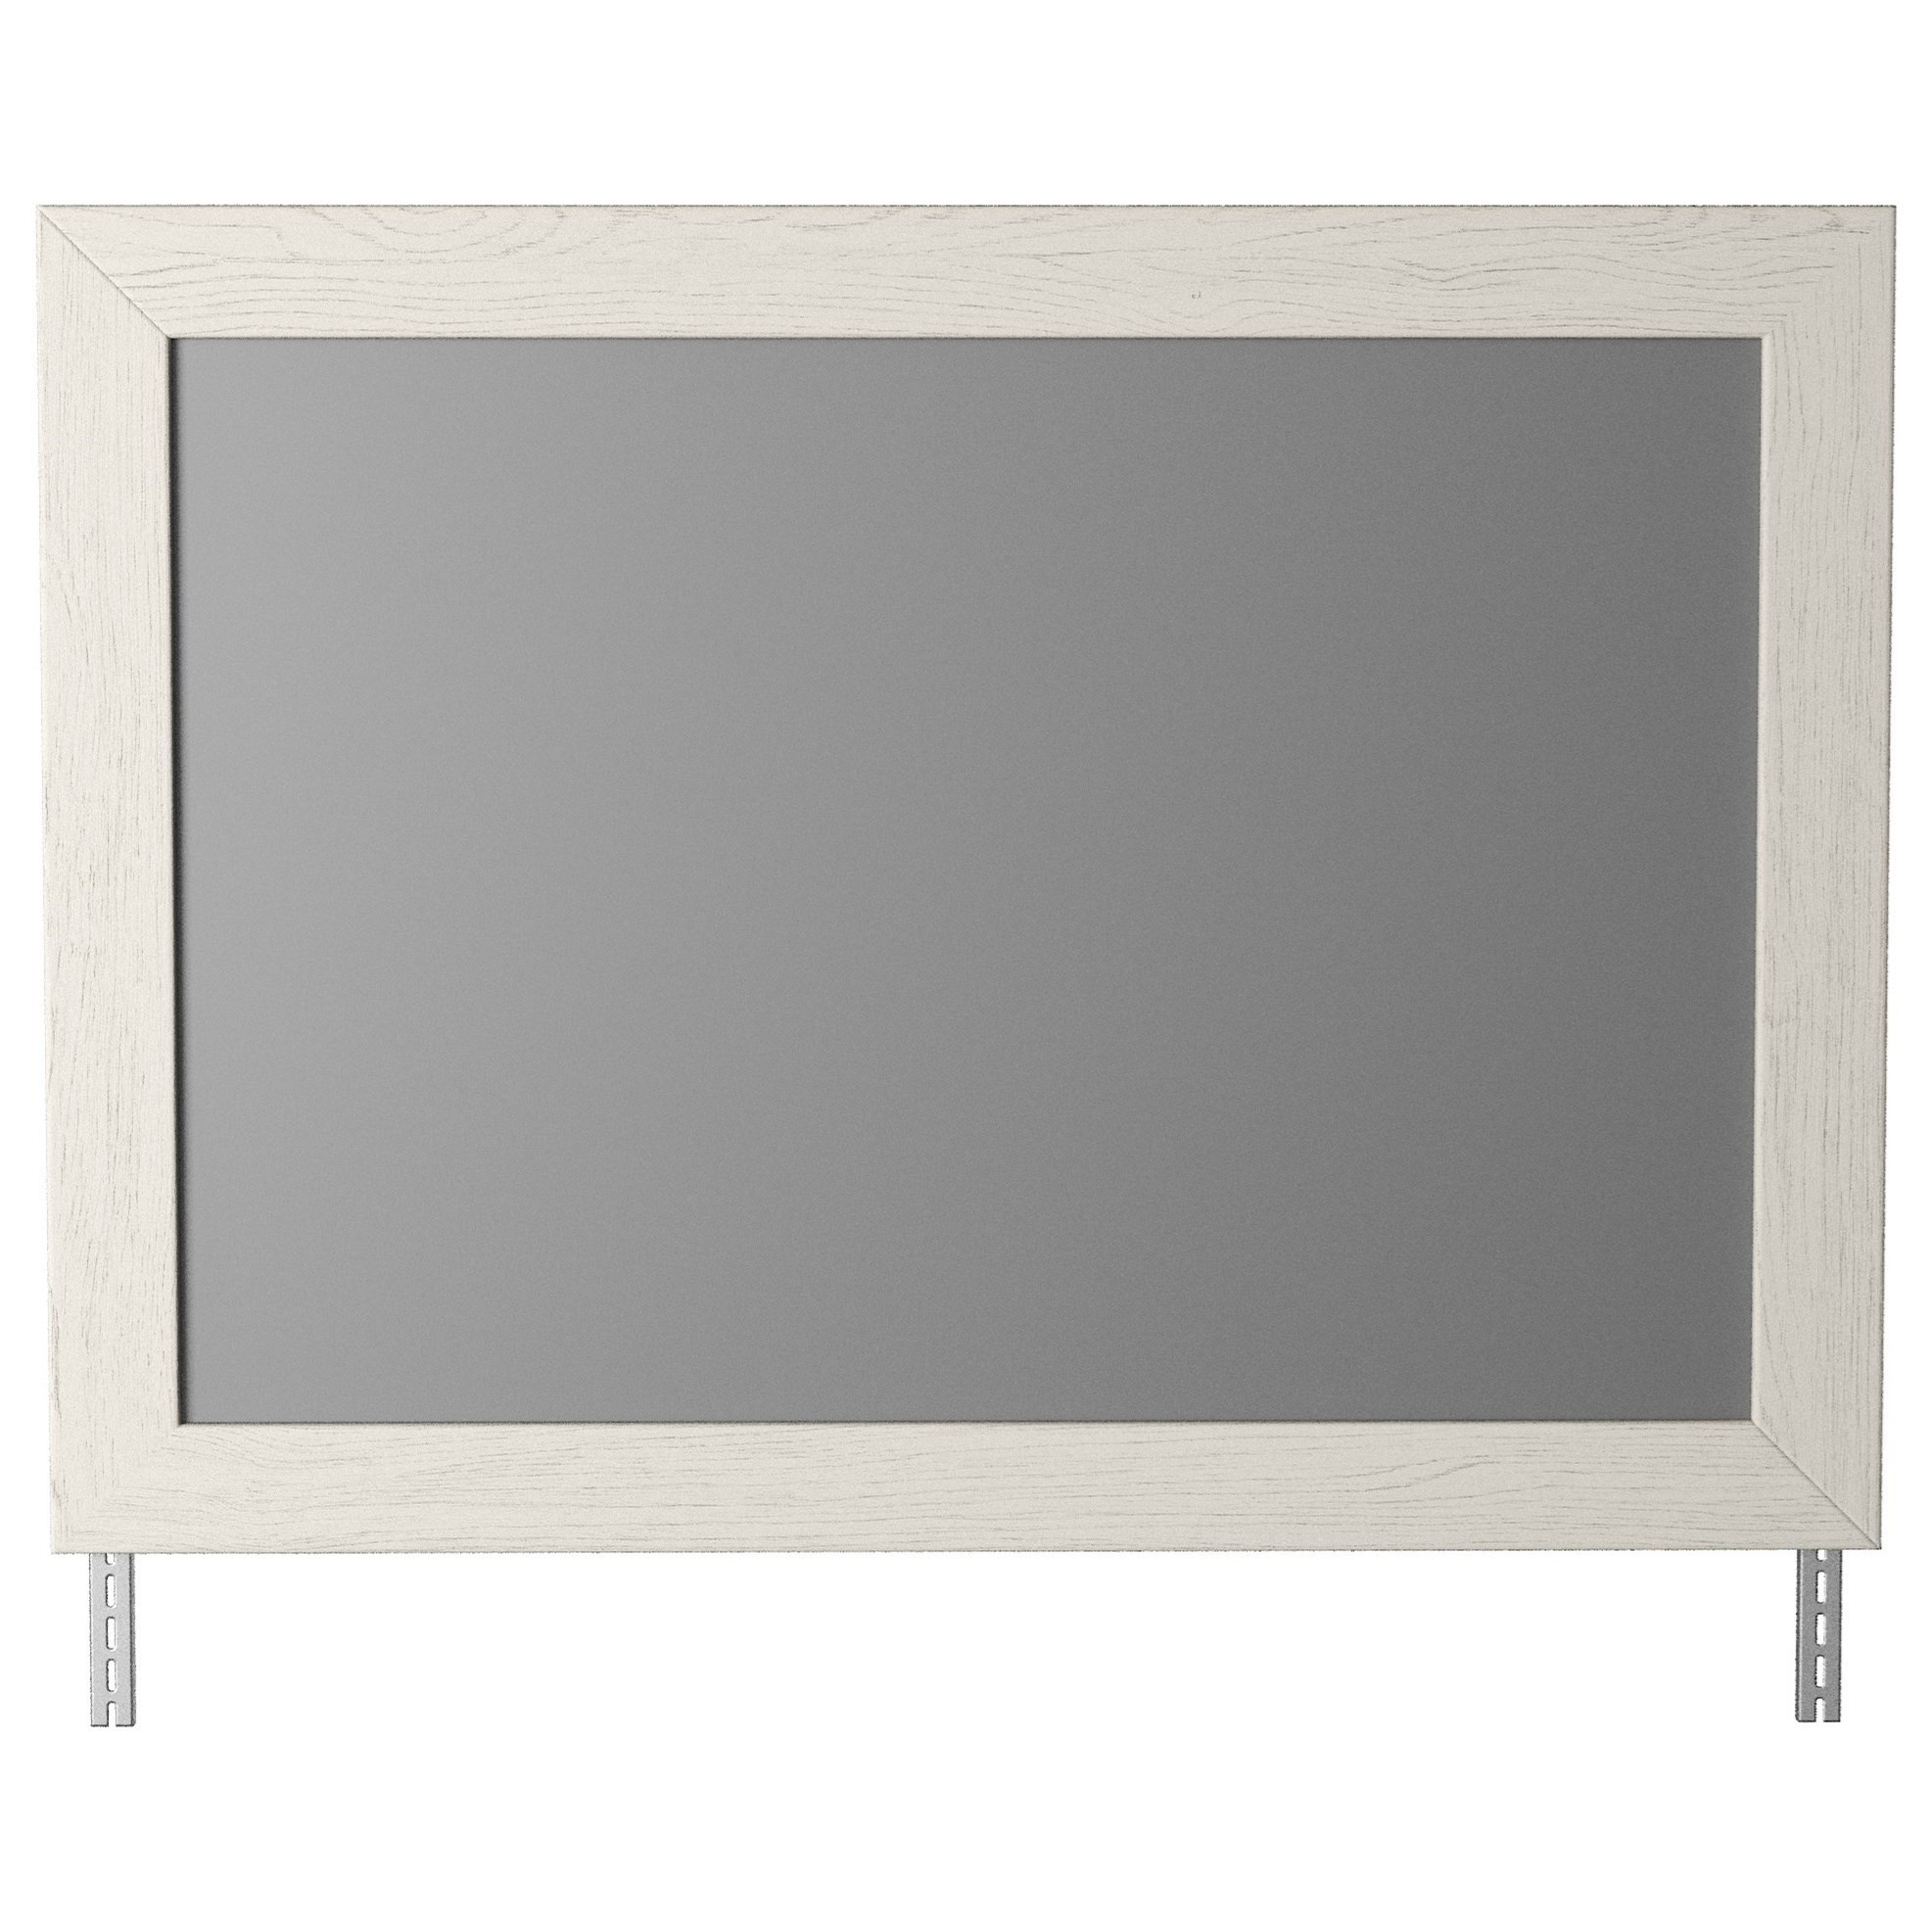 Stelsie Bedroom Mirror by Signature Design by Ashley at Lapeer Furniture & Mattress Center